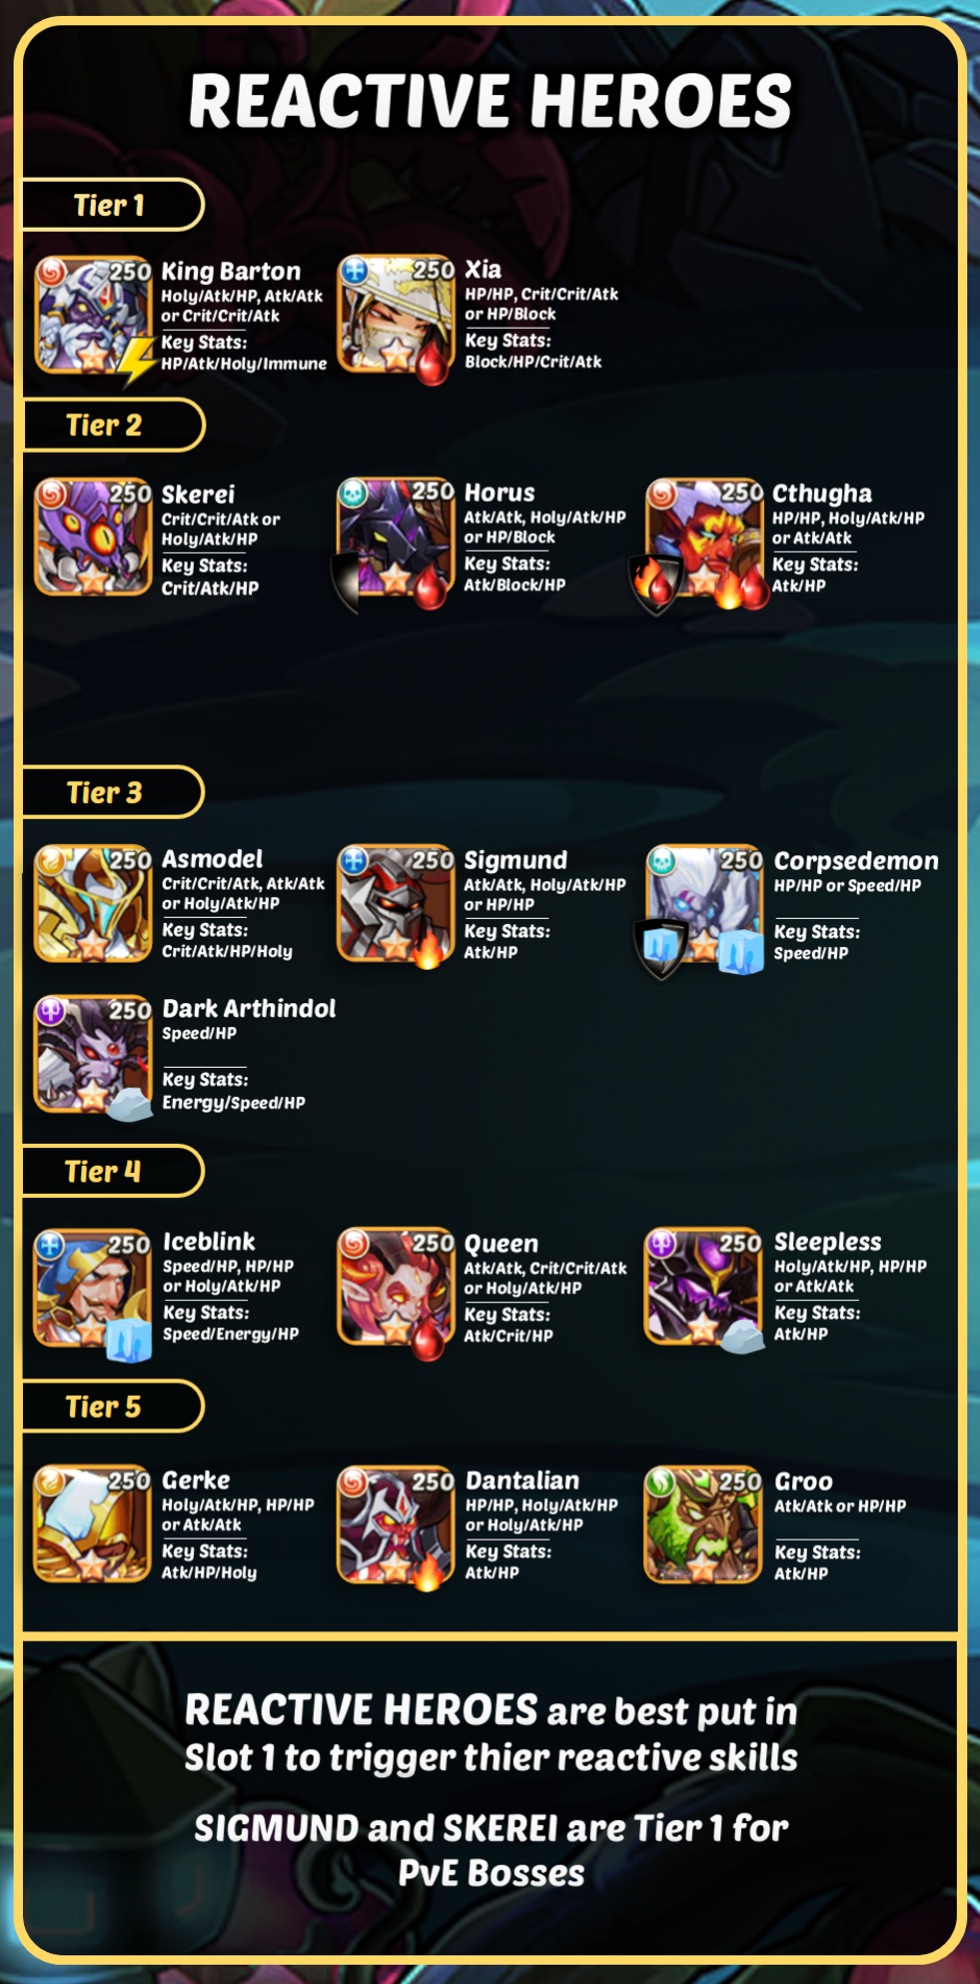 Idle Heroes Tier List: The Best Heroes of Idle Heroes [August 1st 2019]